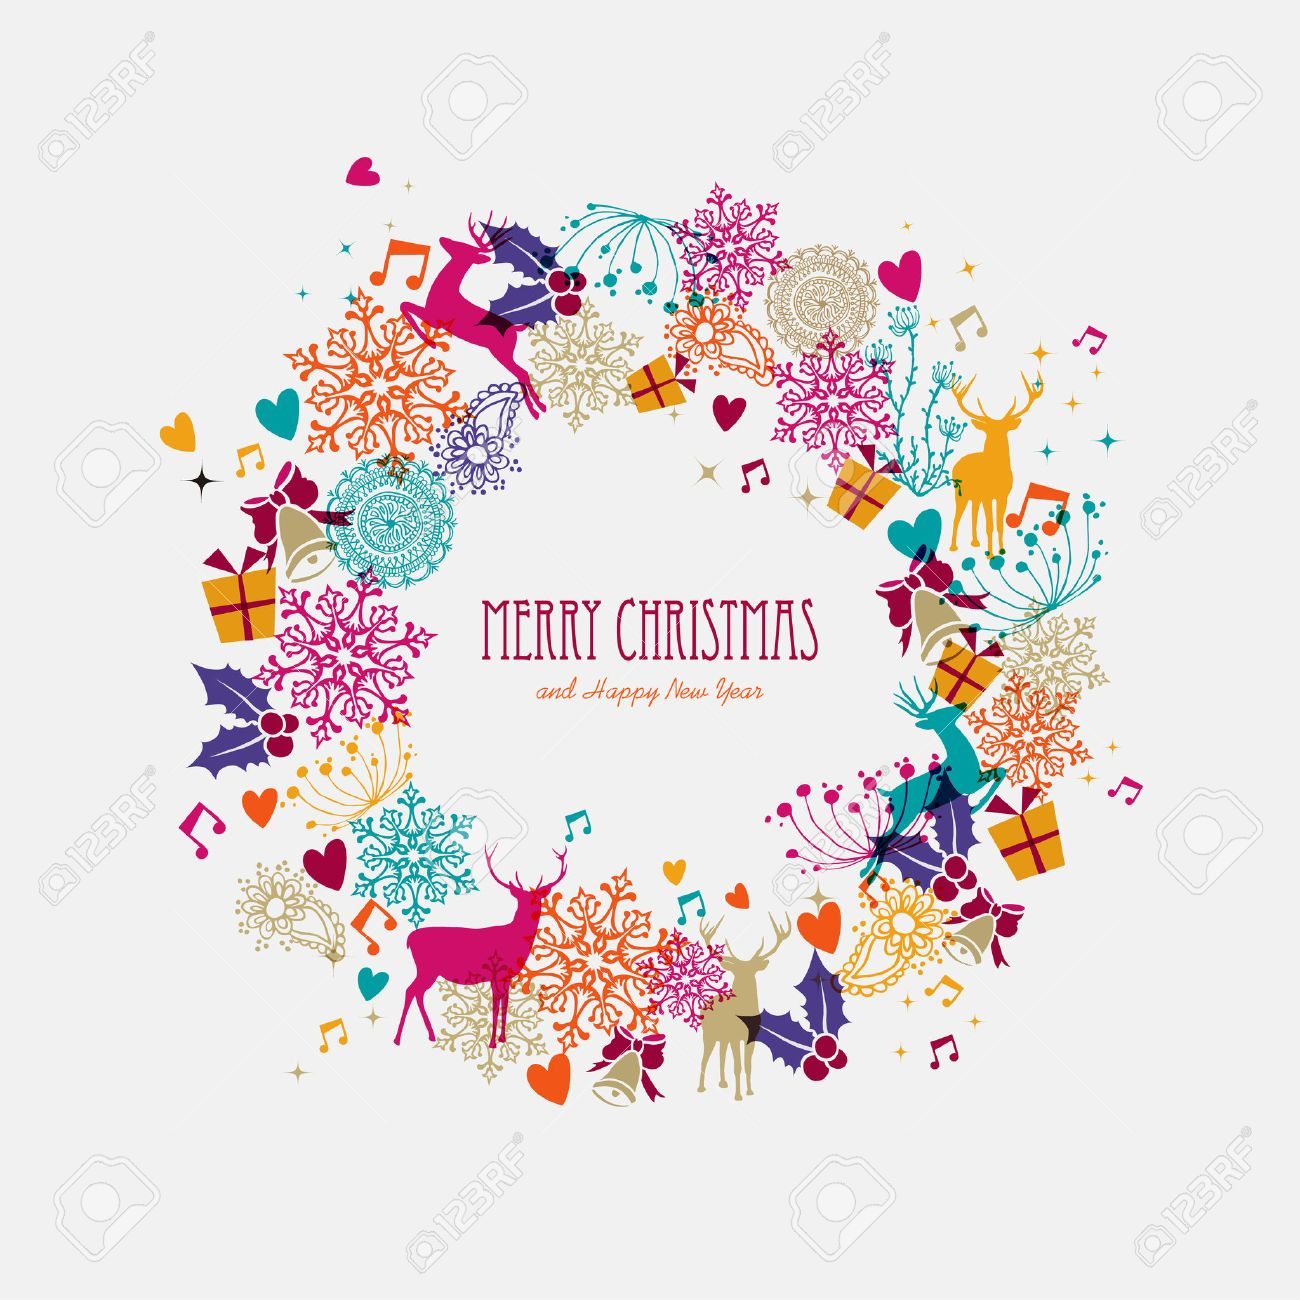 Merry Christmas Wreath Colorful Transparent Holiday Elements Background EPS10 Vector File Organized In Layers For